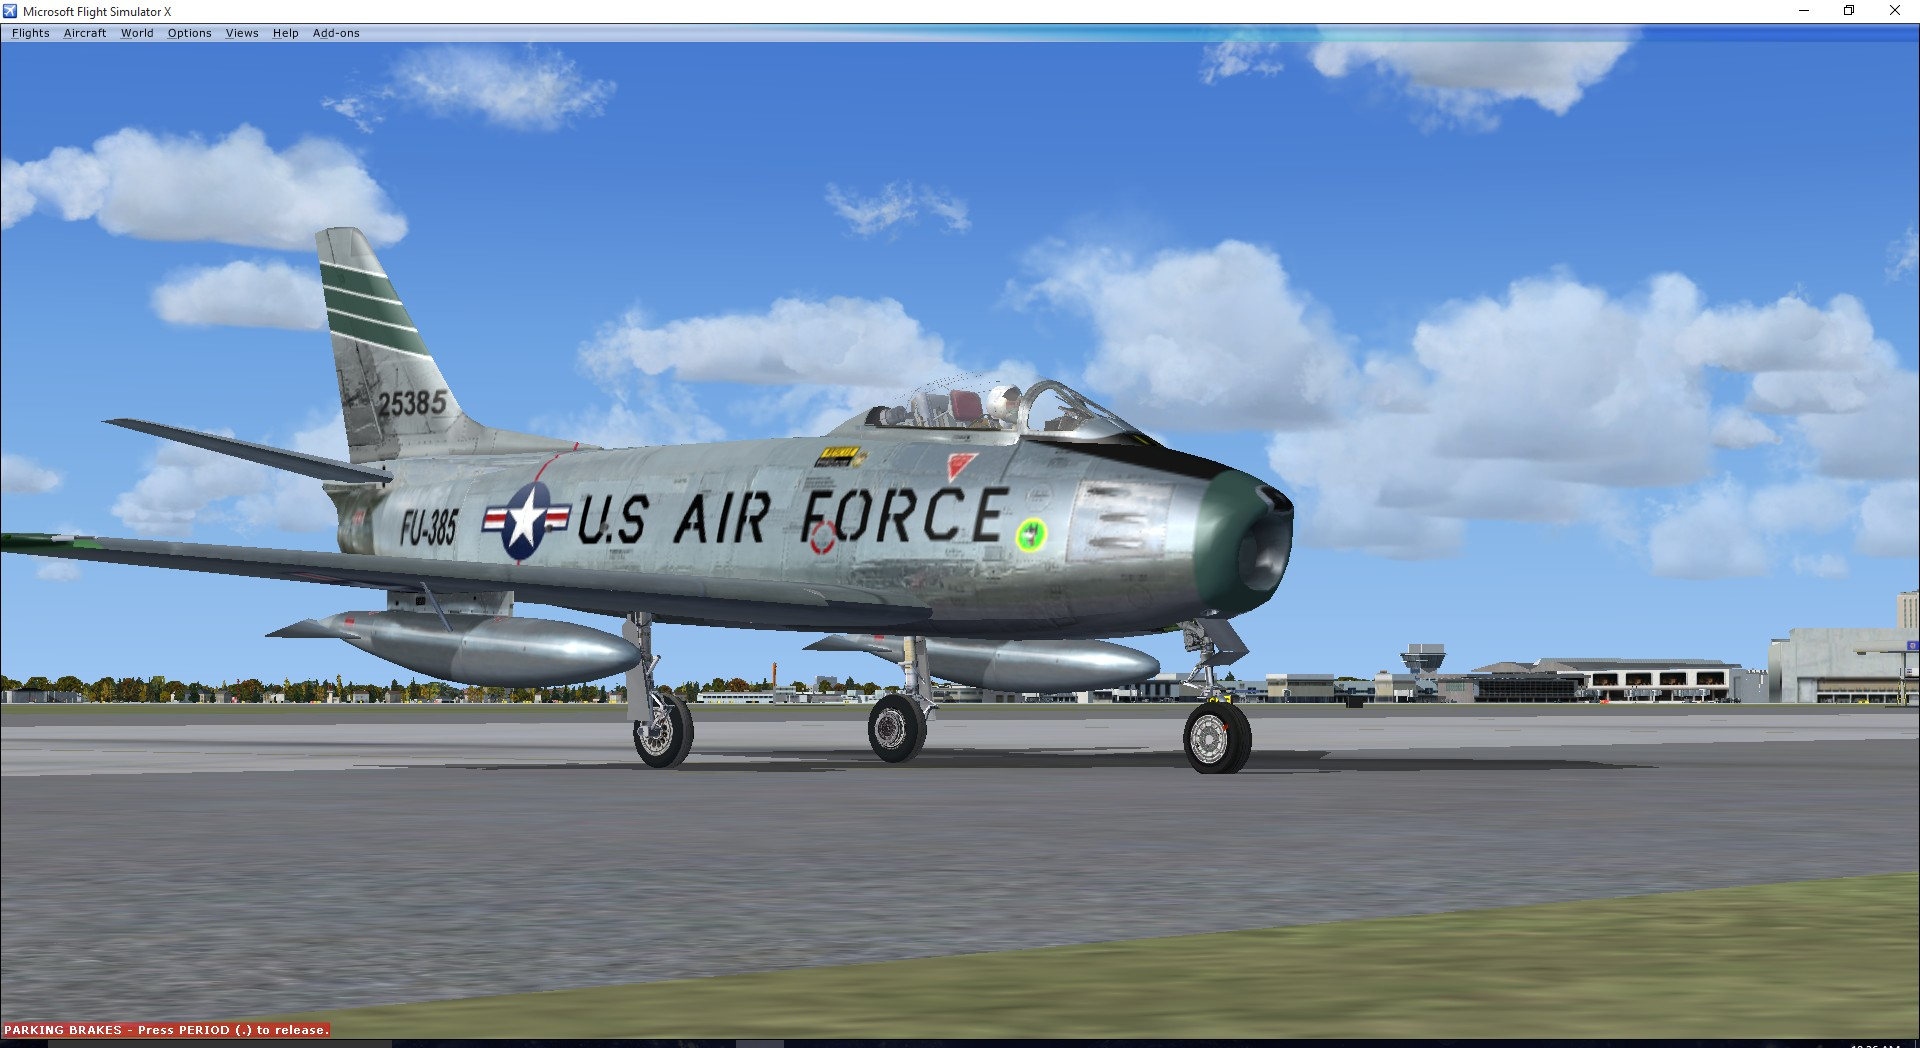 North American F-86F Sabre FU-385 USAF Wolfhounds